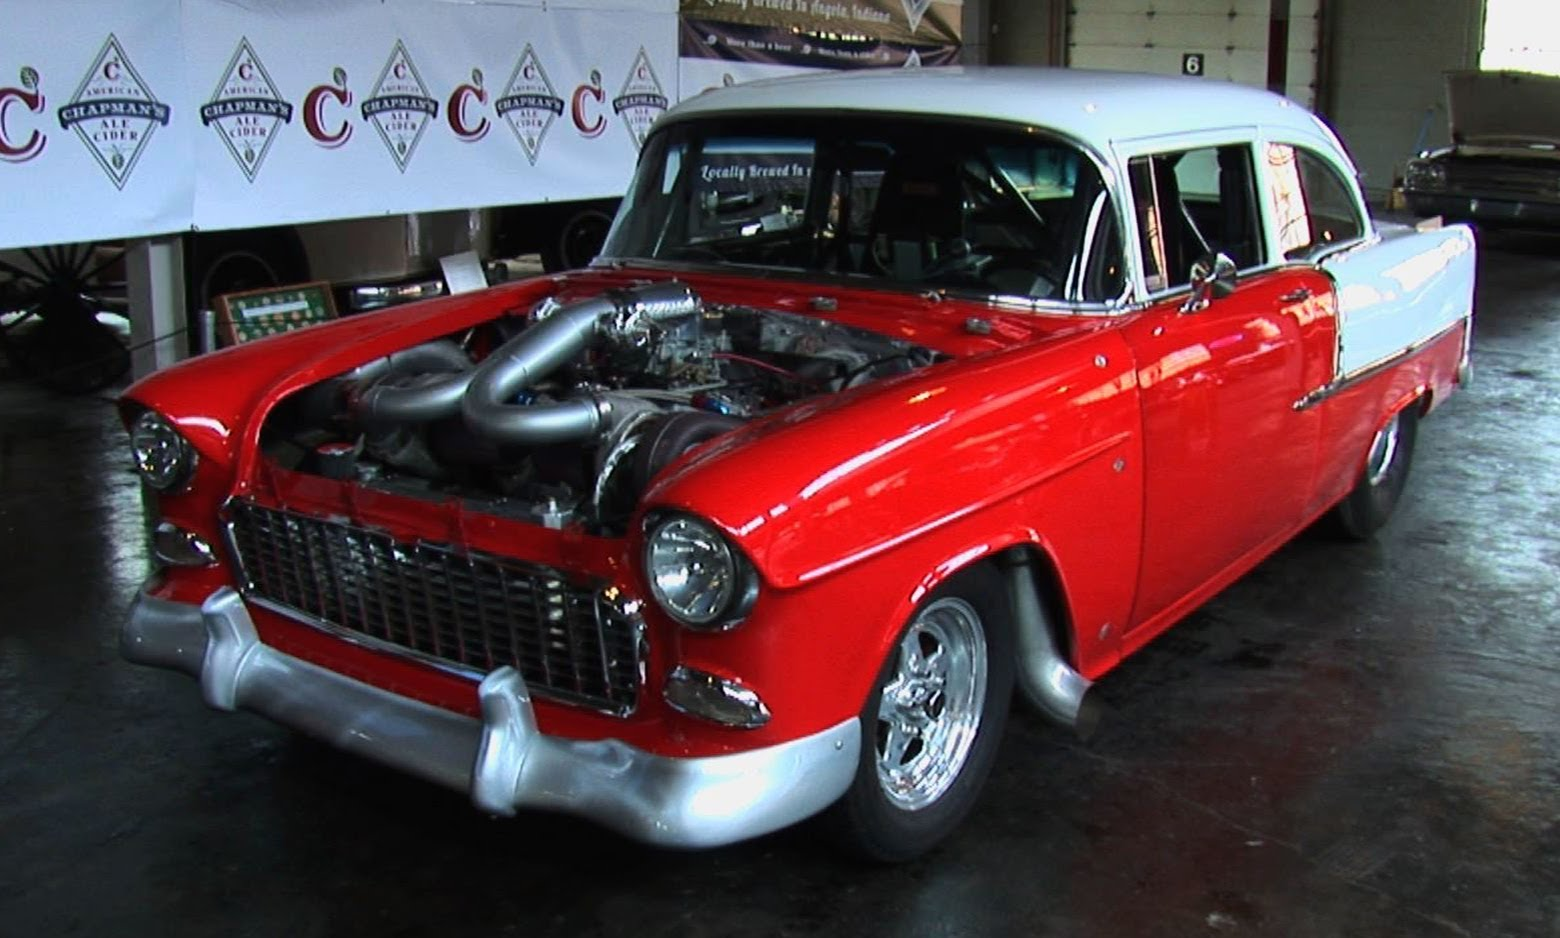 1955 Chevrolet Bel Air Twin Turbo 1100 Hp Street Car Scottiedtv Coolest Cars On The Web